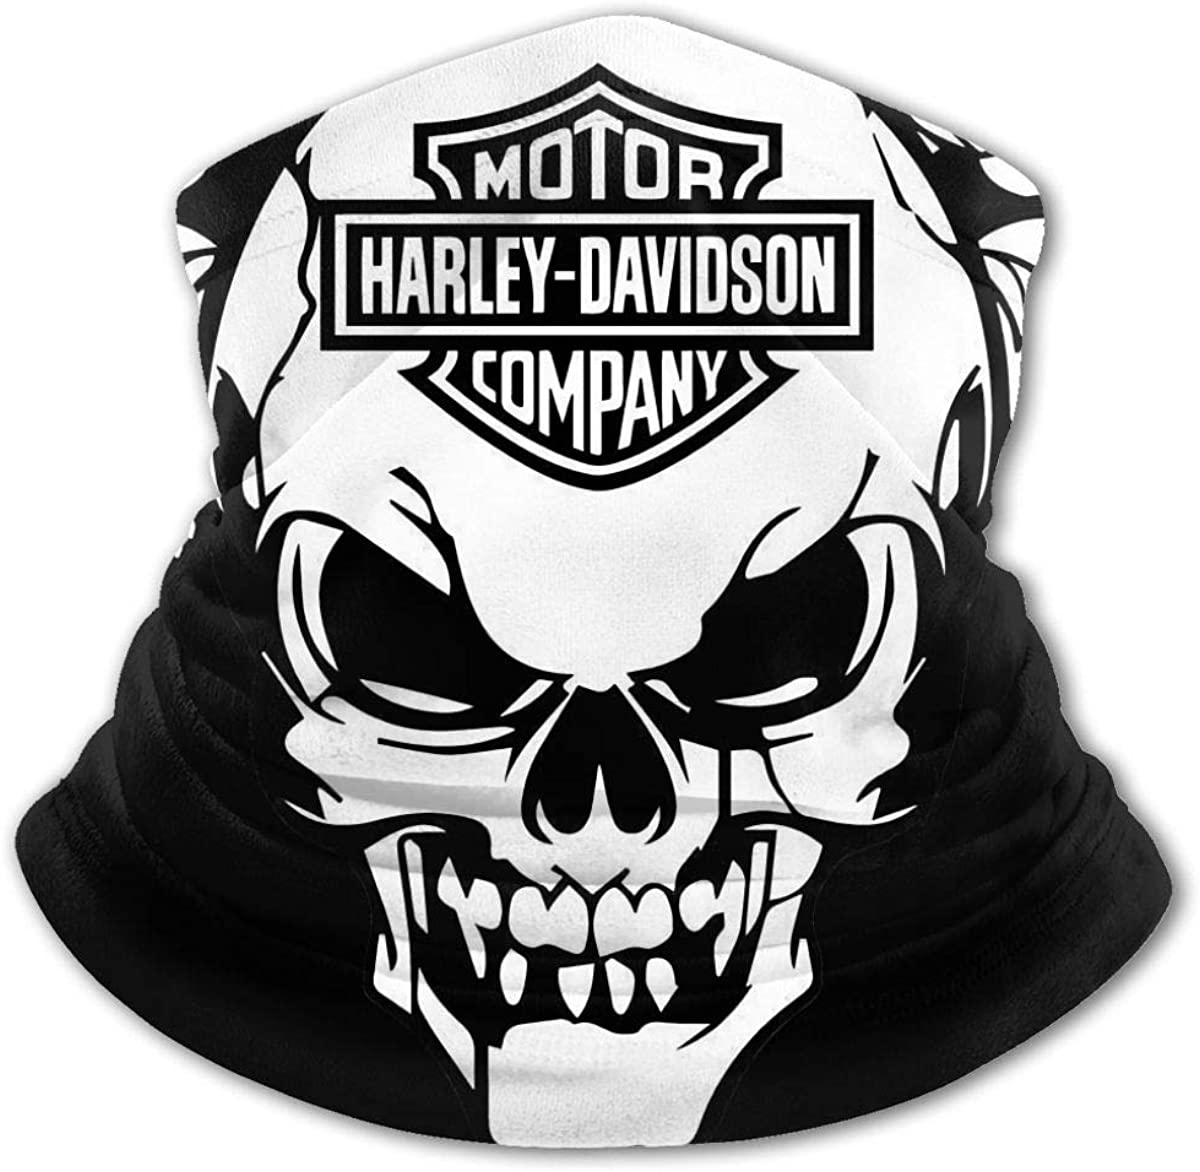 Harley Davidson Kids Bandanas Face Mask Mouth Cloth Cover Balaclavs Tube Headband for Dust Sun Protection Black